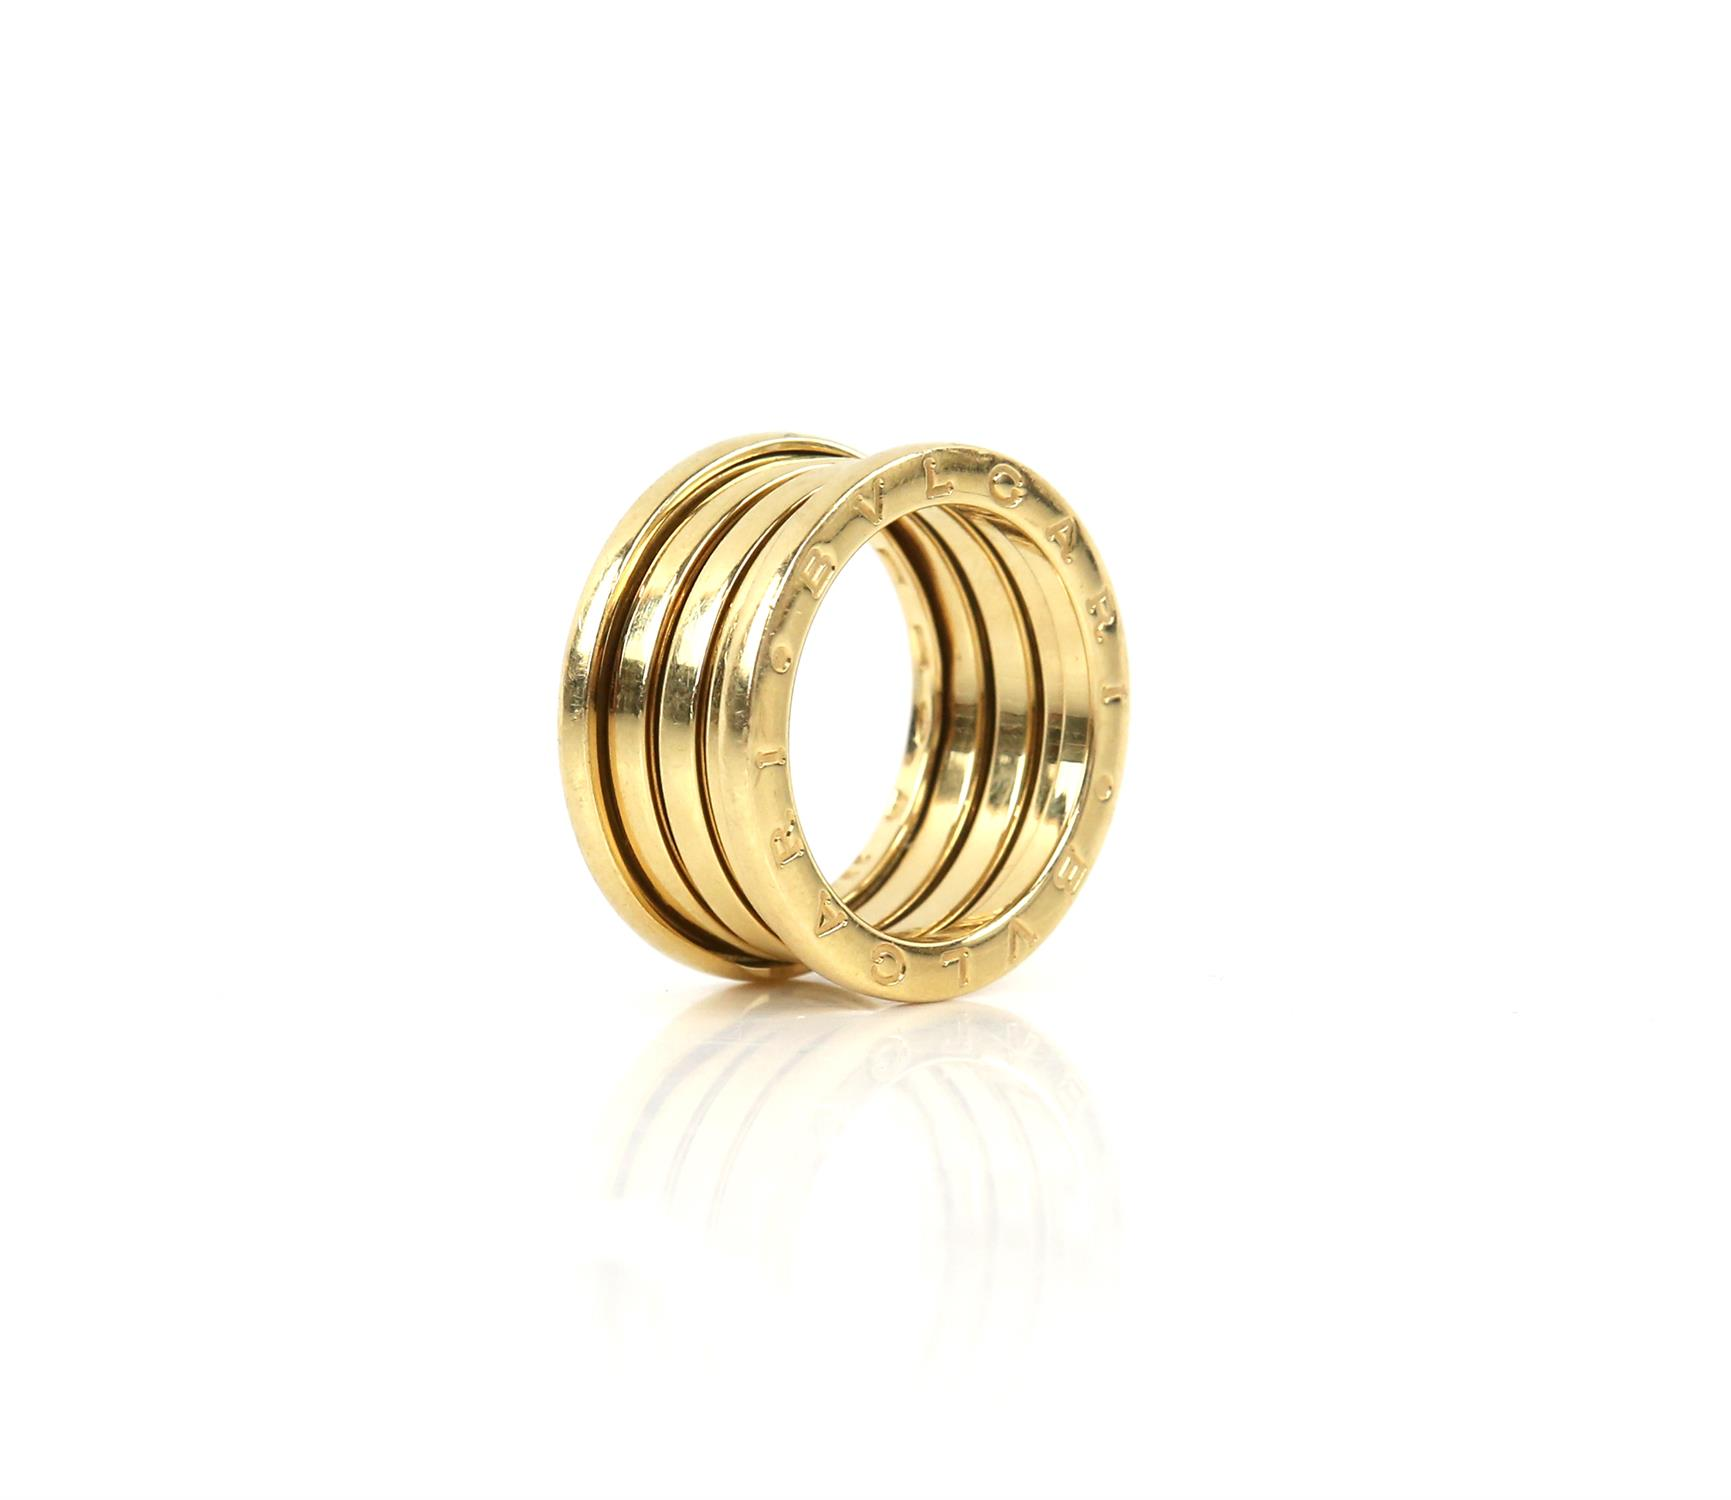 Bvlgari B.Zero1 four band ring, inside band marked Made in Italy 750, with Bvlgari makers mark, - Image 3 of 6